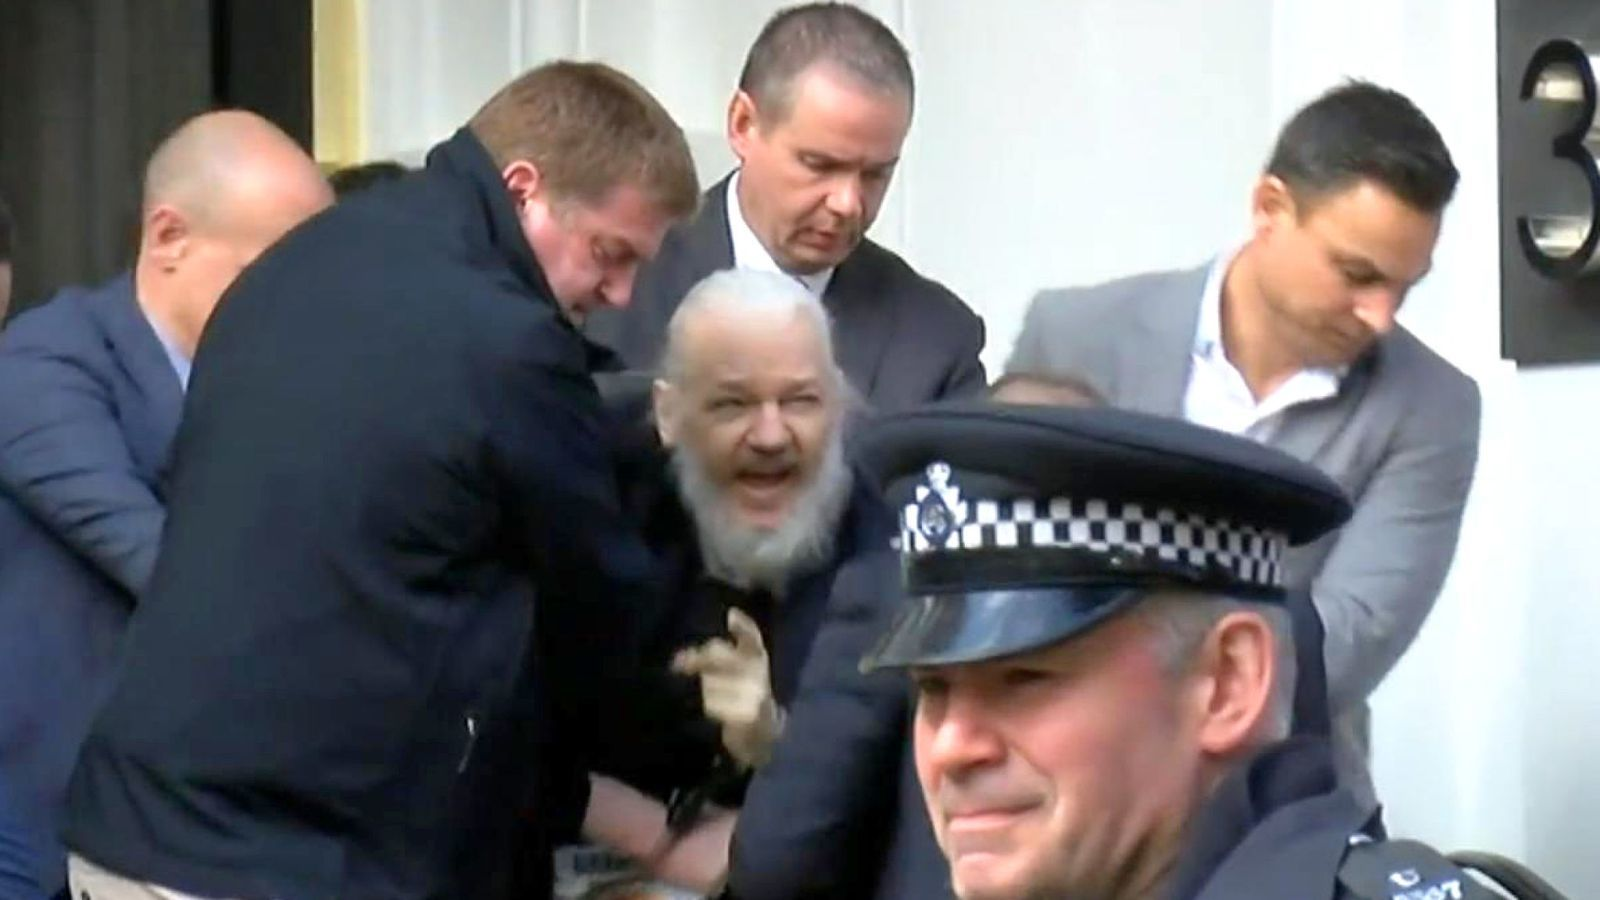 Julian Assange's arrest stirs strong reactions from foes, allies alike